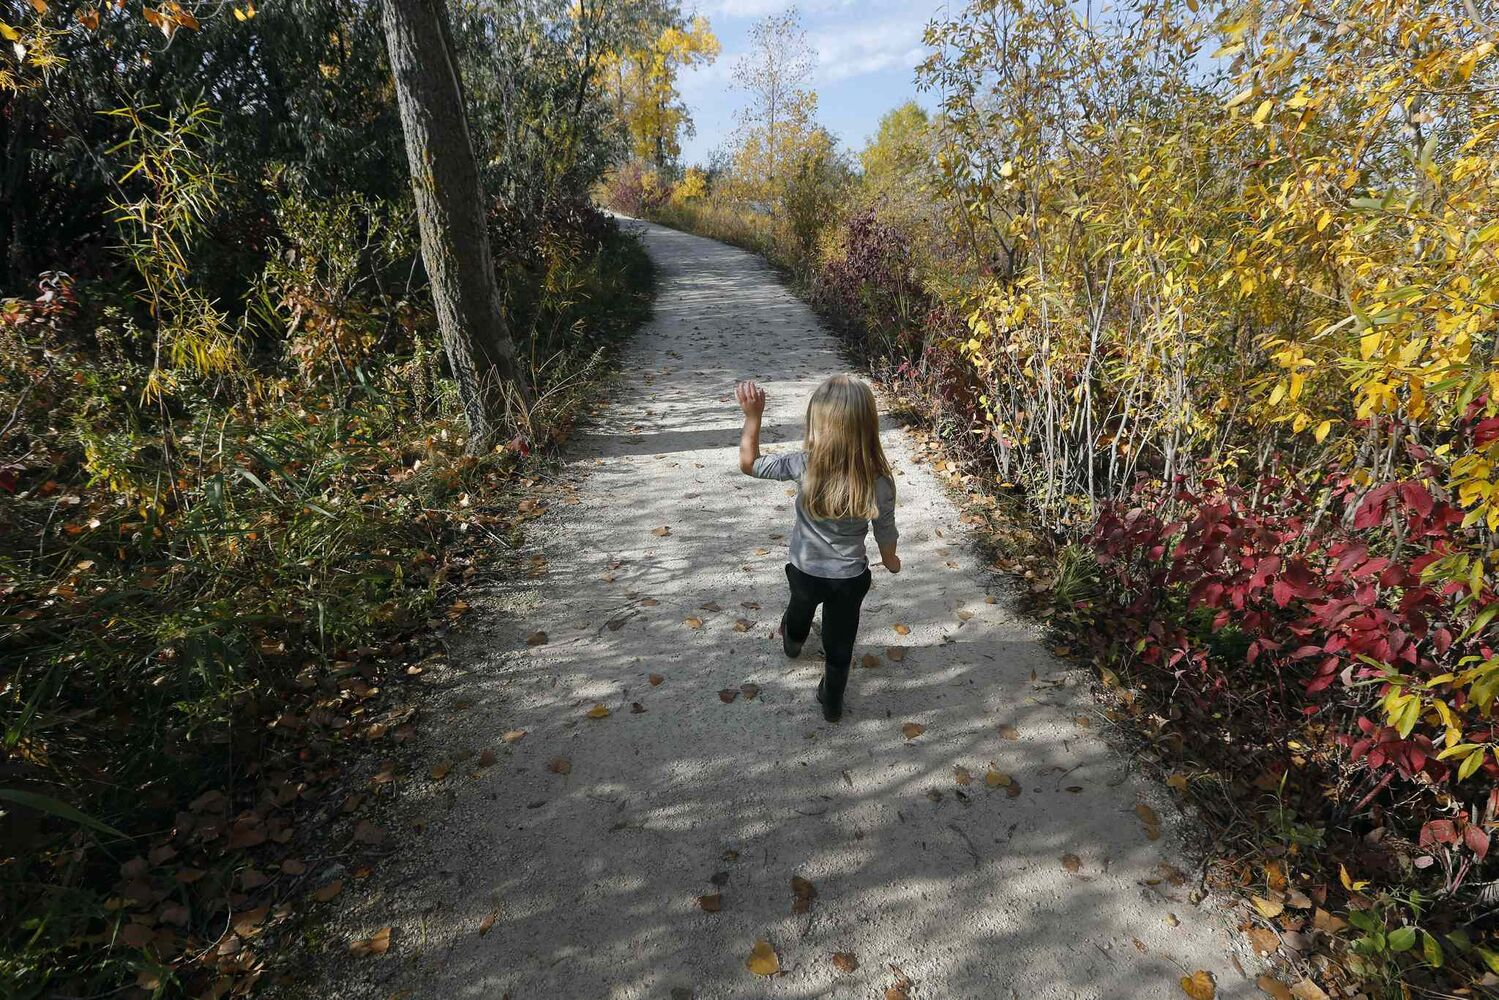 Paths and boardwalks at FortWhyte Alive give the public pathways to connect with nature. (KEN GIGLIOTTI / WINNIPEG FREE PRESS)